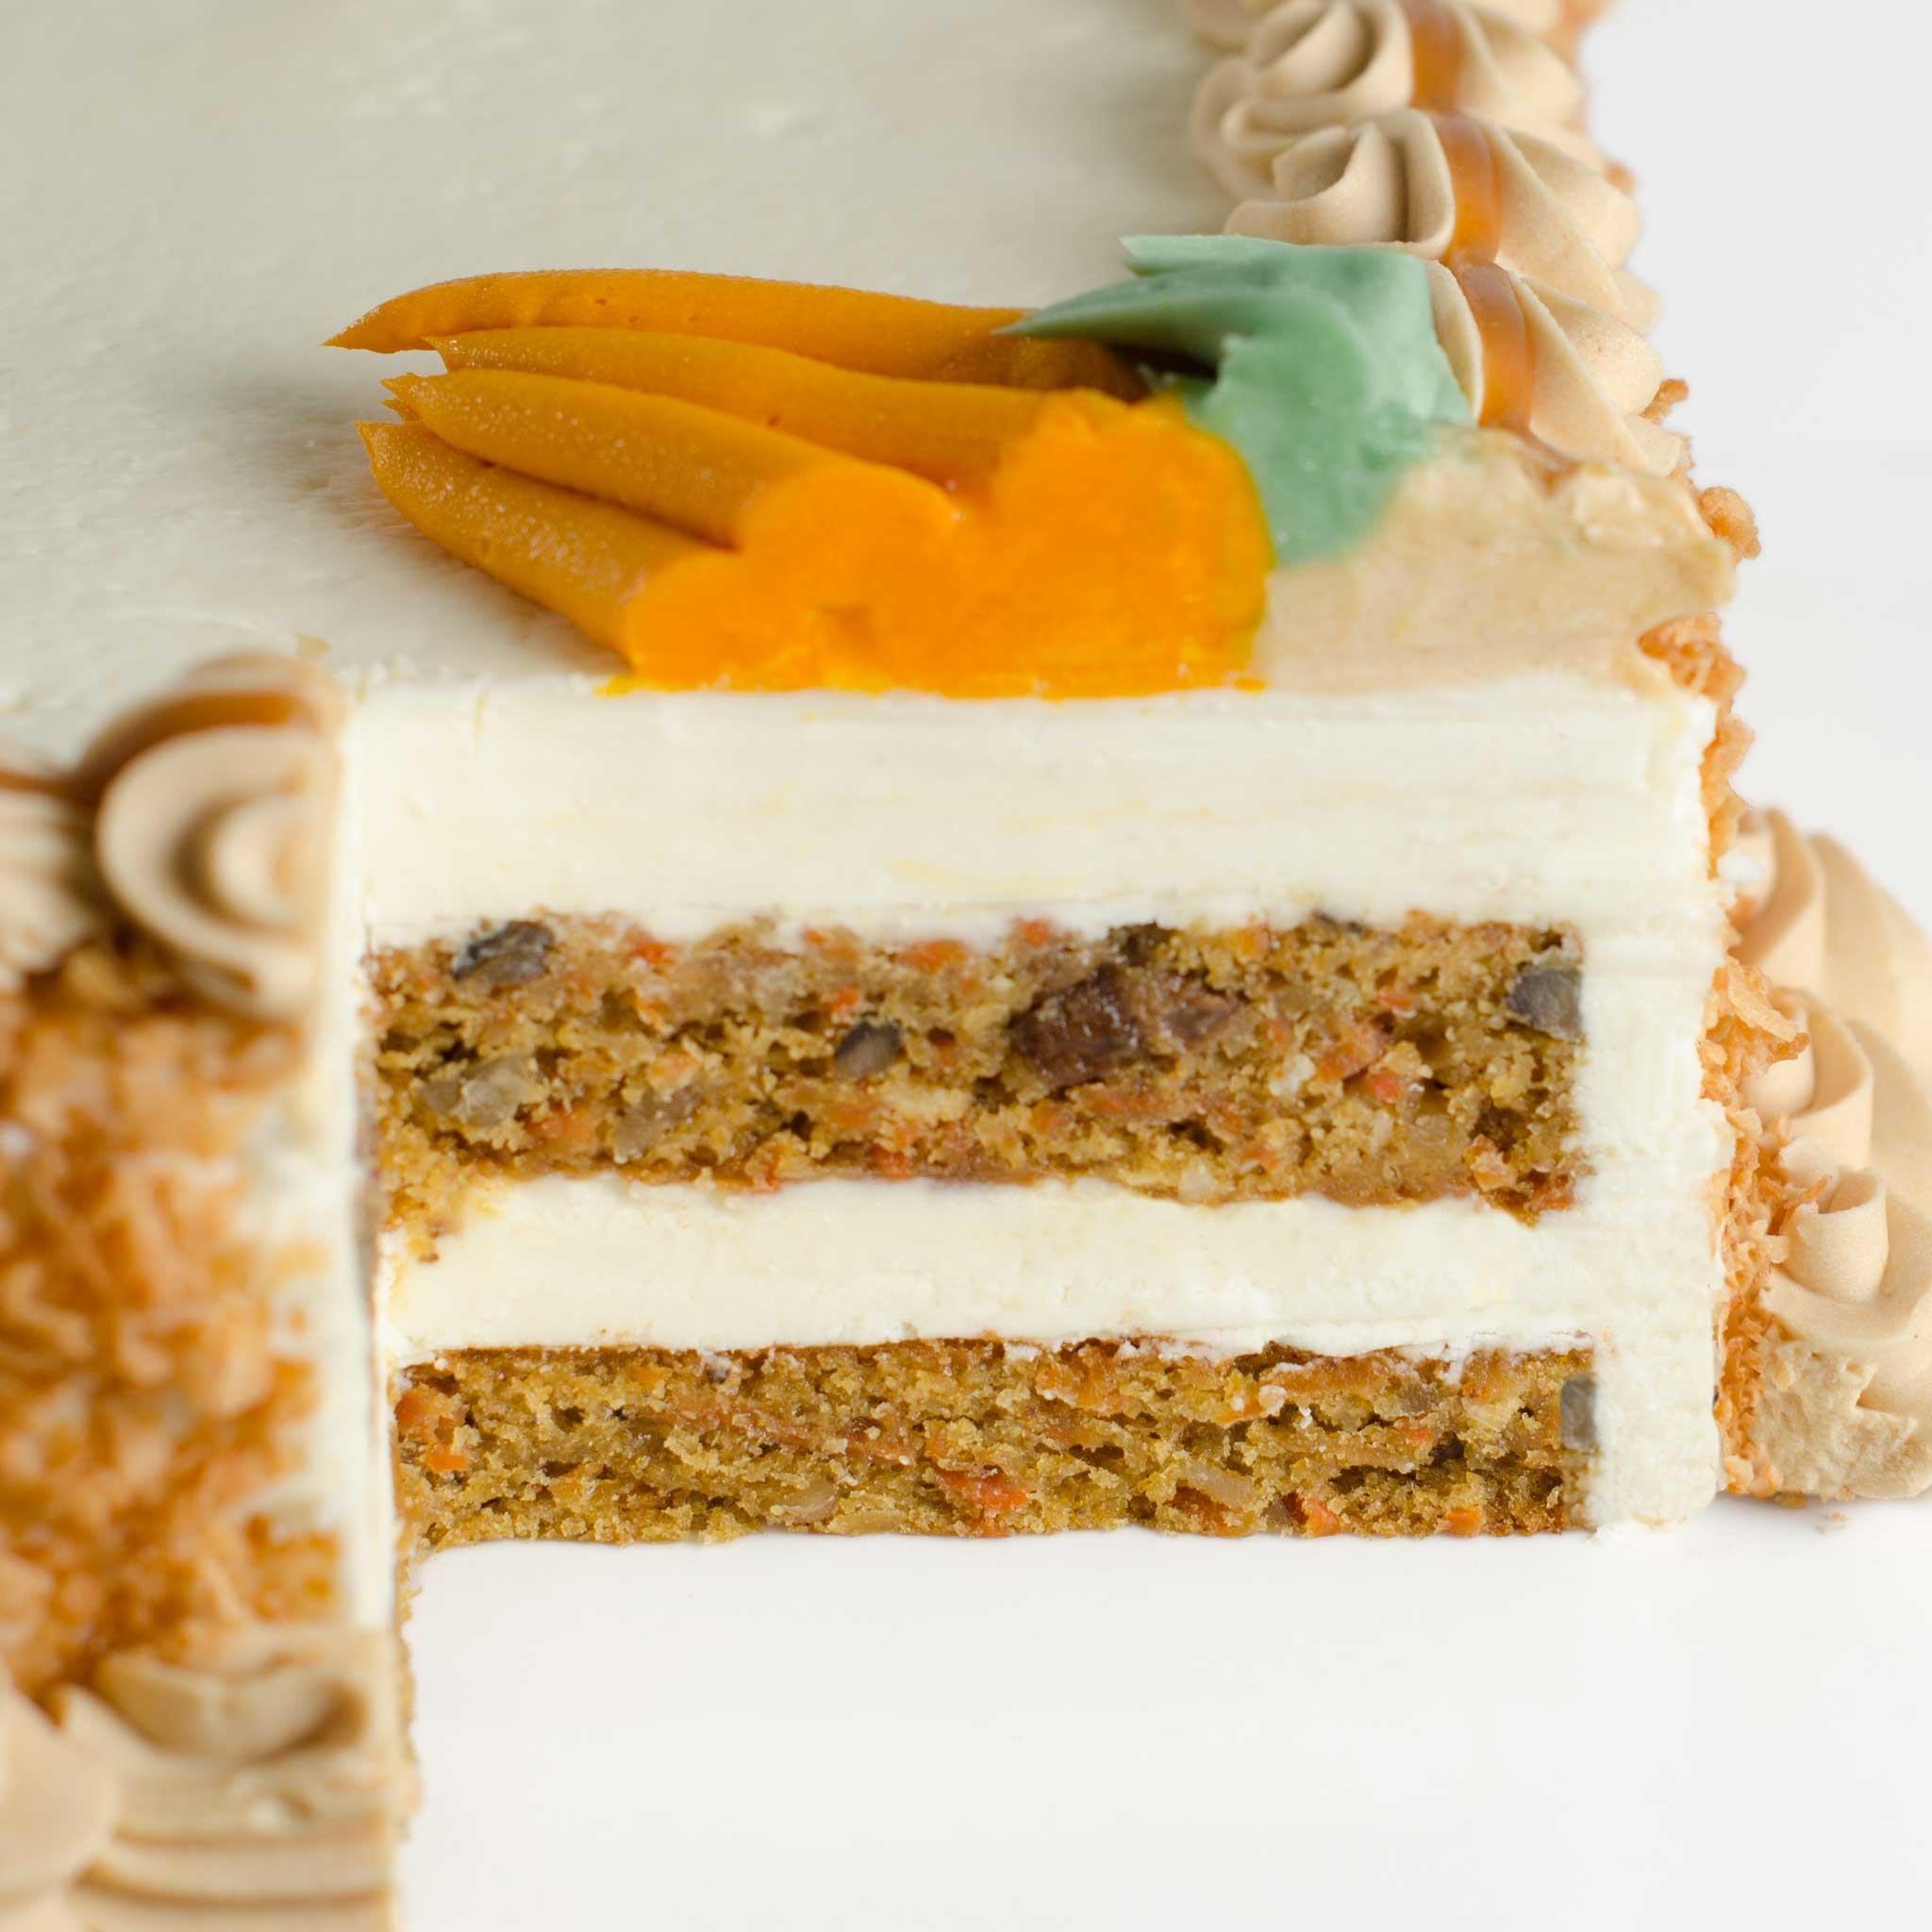 La-Rocca-Carrot-Celebration-Cake-Full-Slab-Detail